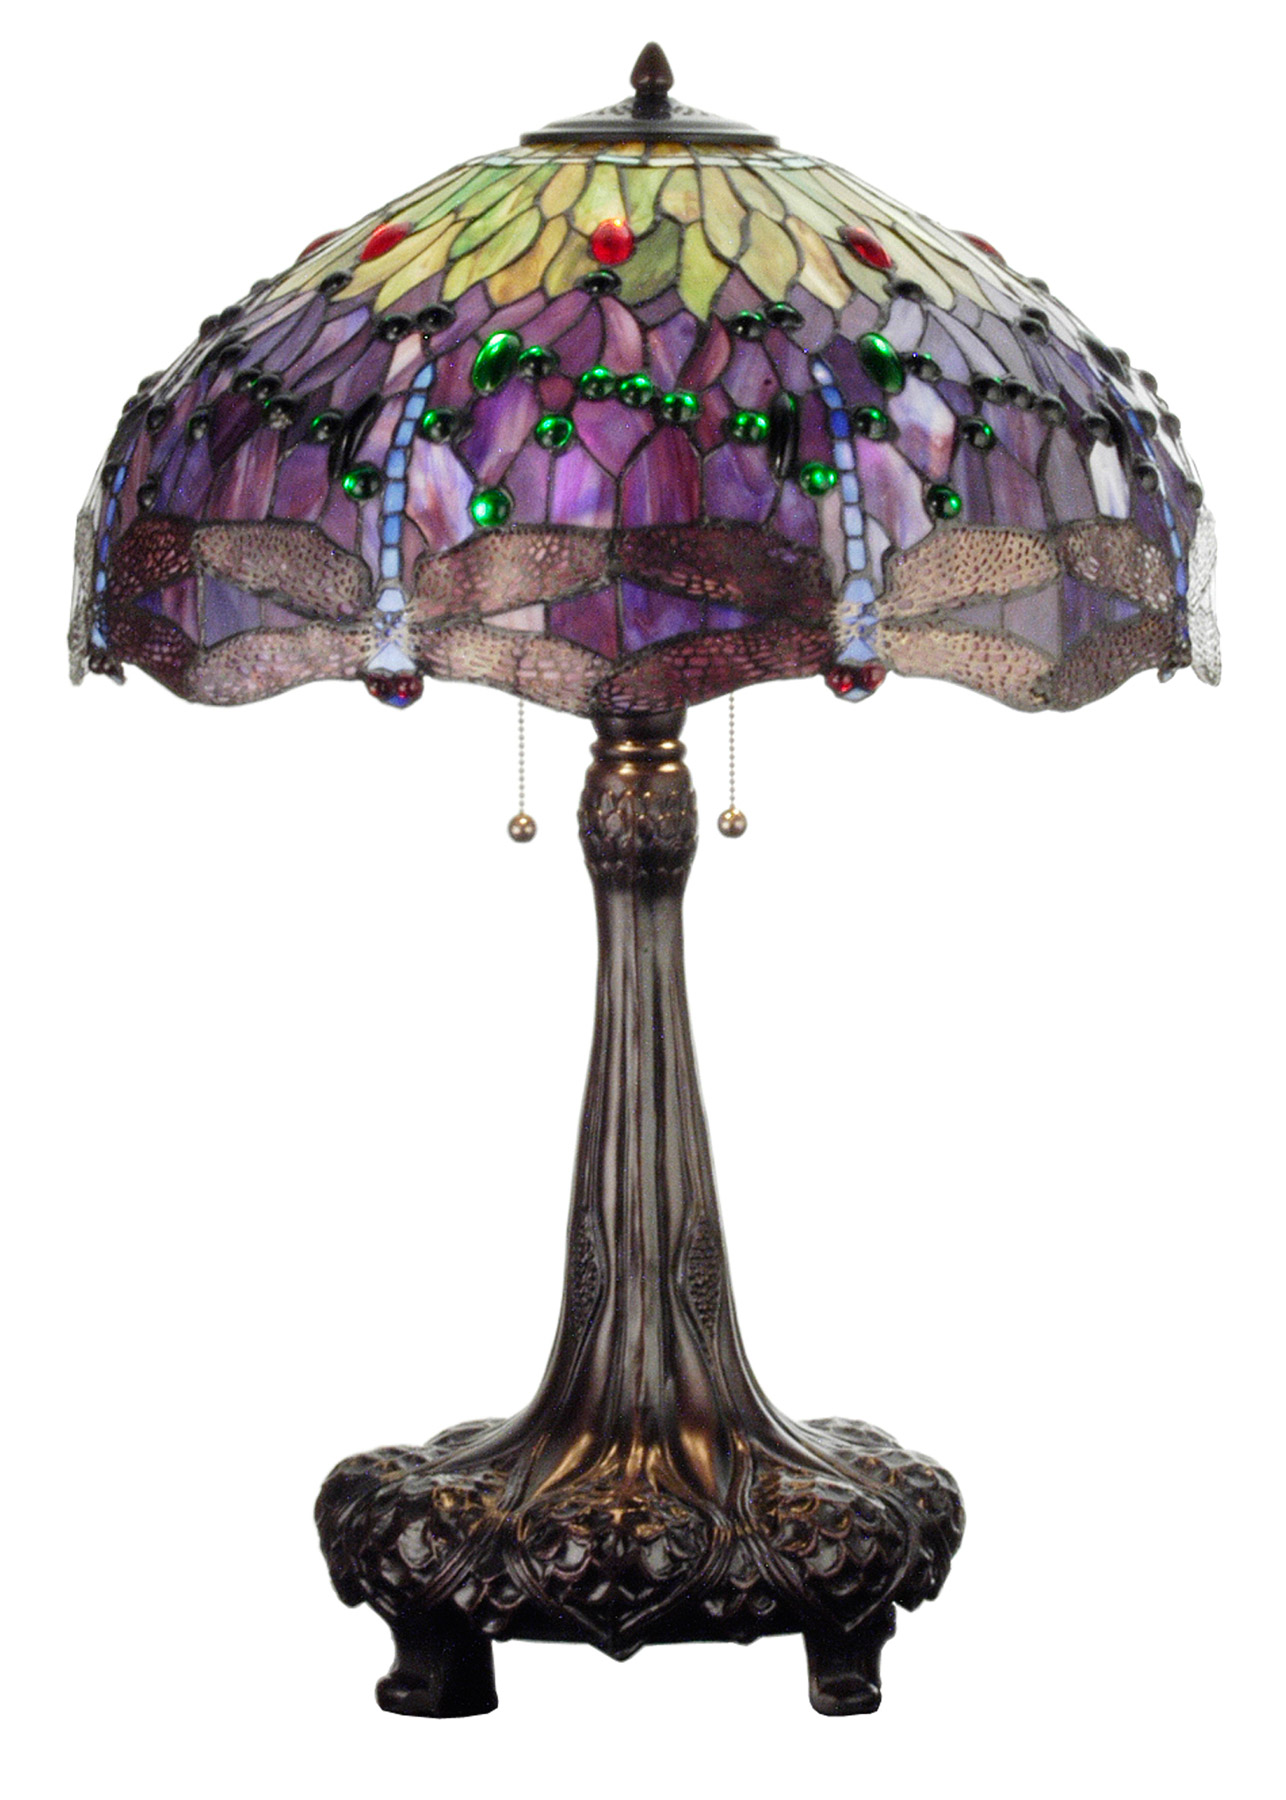 Meyda 31112 Tiffany Hanginghead Dragonfly Table Lamp